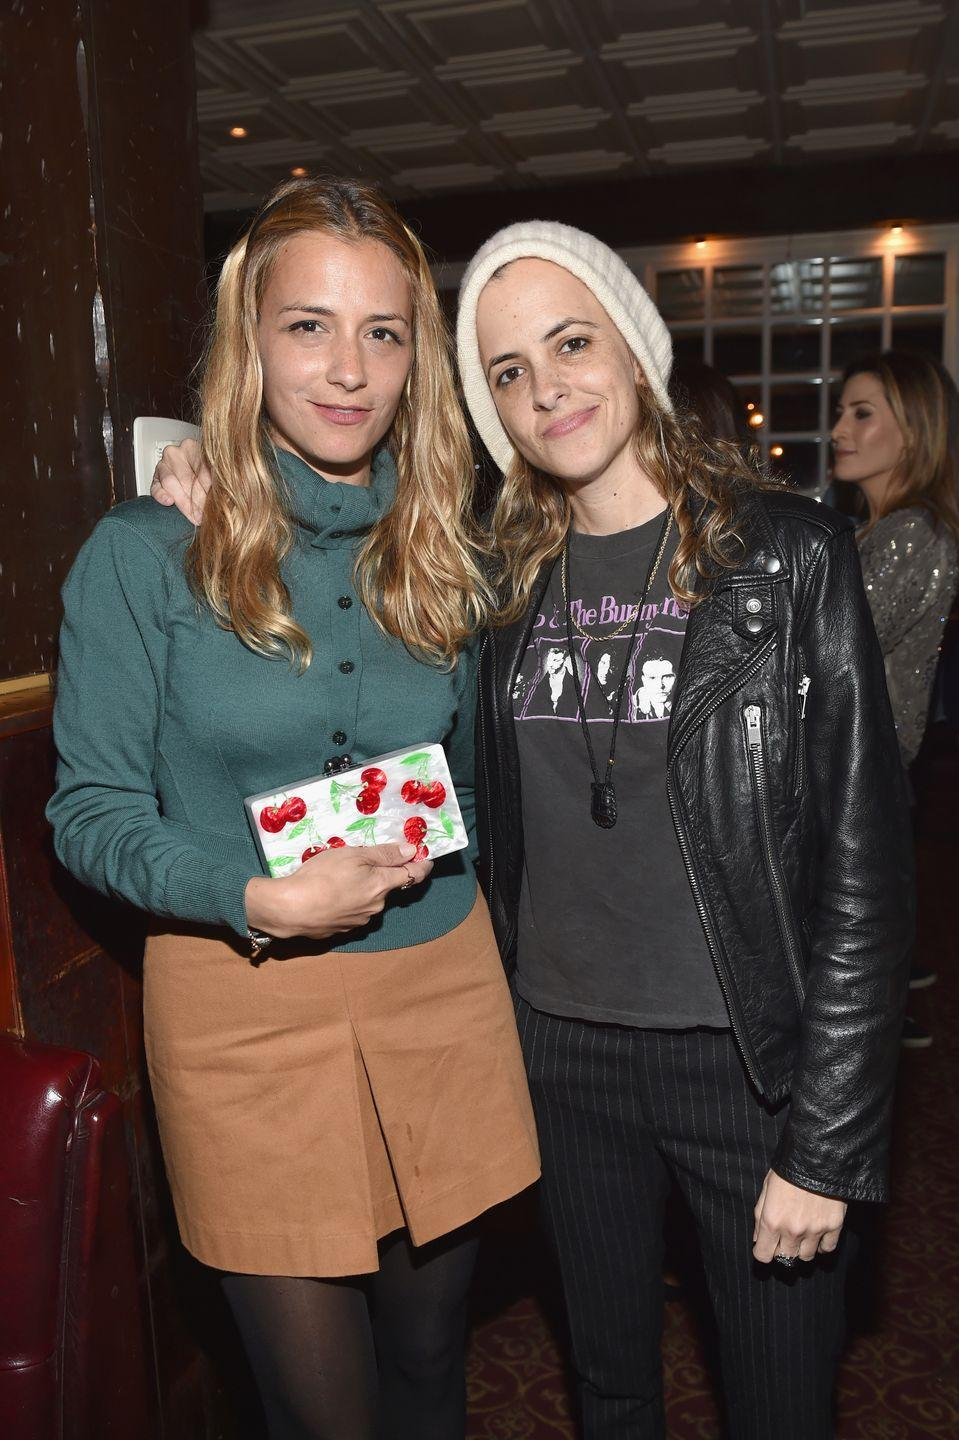 <p>Twins Charlotte and Samantha Ronson have very different interests: Charlotte's a fashion designer and Samantha's a DJ. But their slight smiles and deep set brown eyes make it undeniable that they're related.</p>